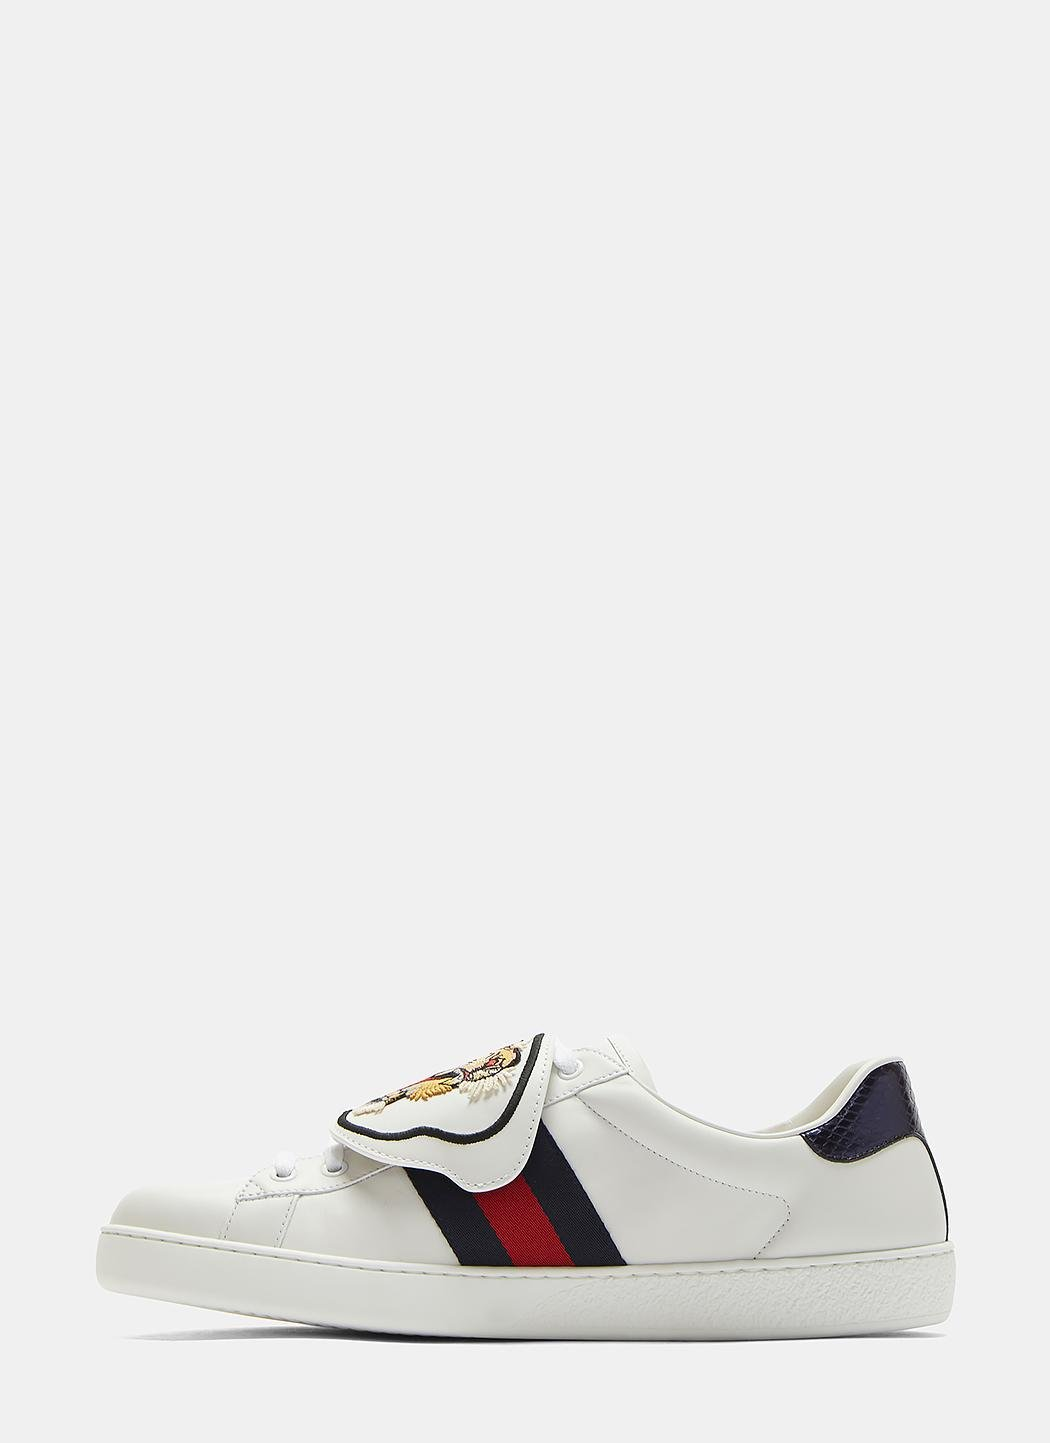 f928bb3dc Gucci Ace Removable Embroidered Tiger Patch Sneakers In White in ...